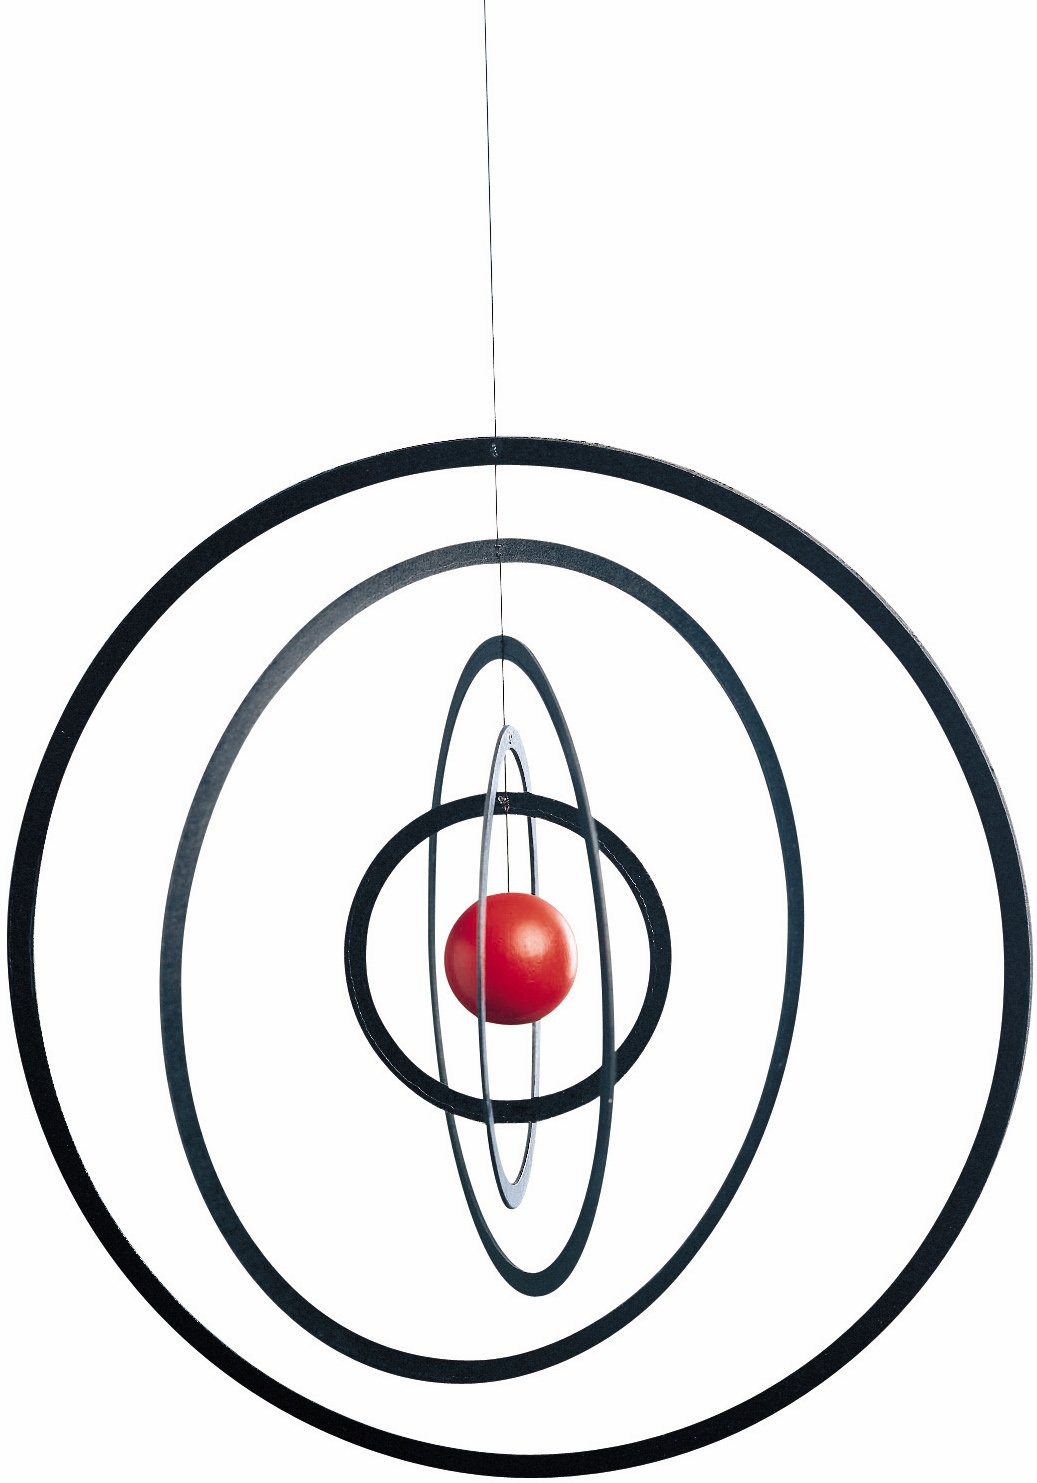 Flensted Mobiles Science Fiction Hanging Mobile - 10 Inches - Wood by Flensted Mobiles